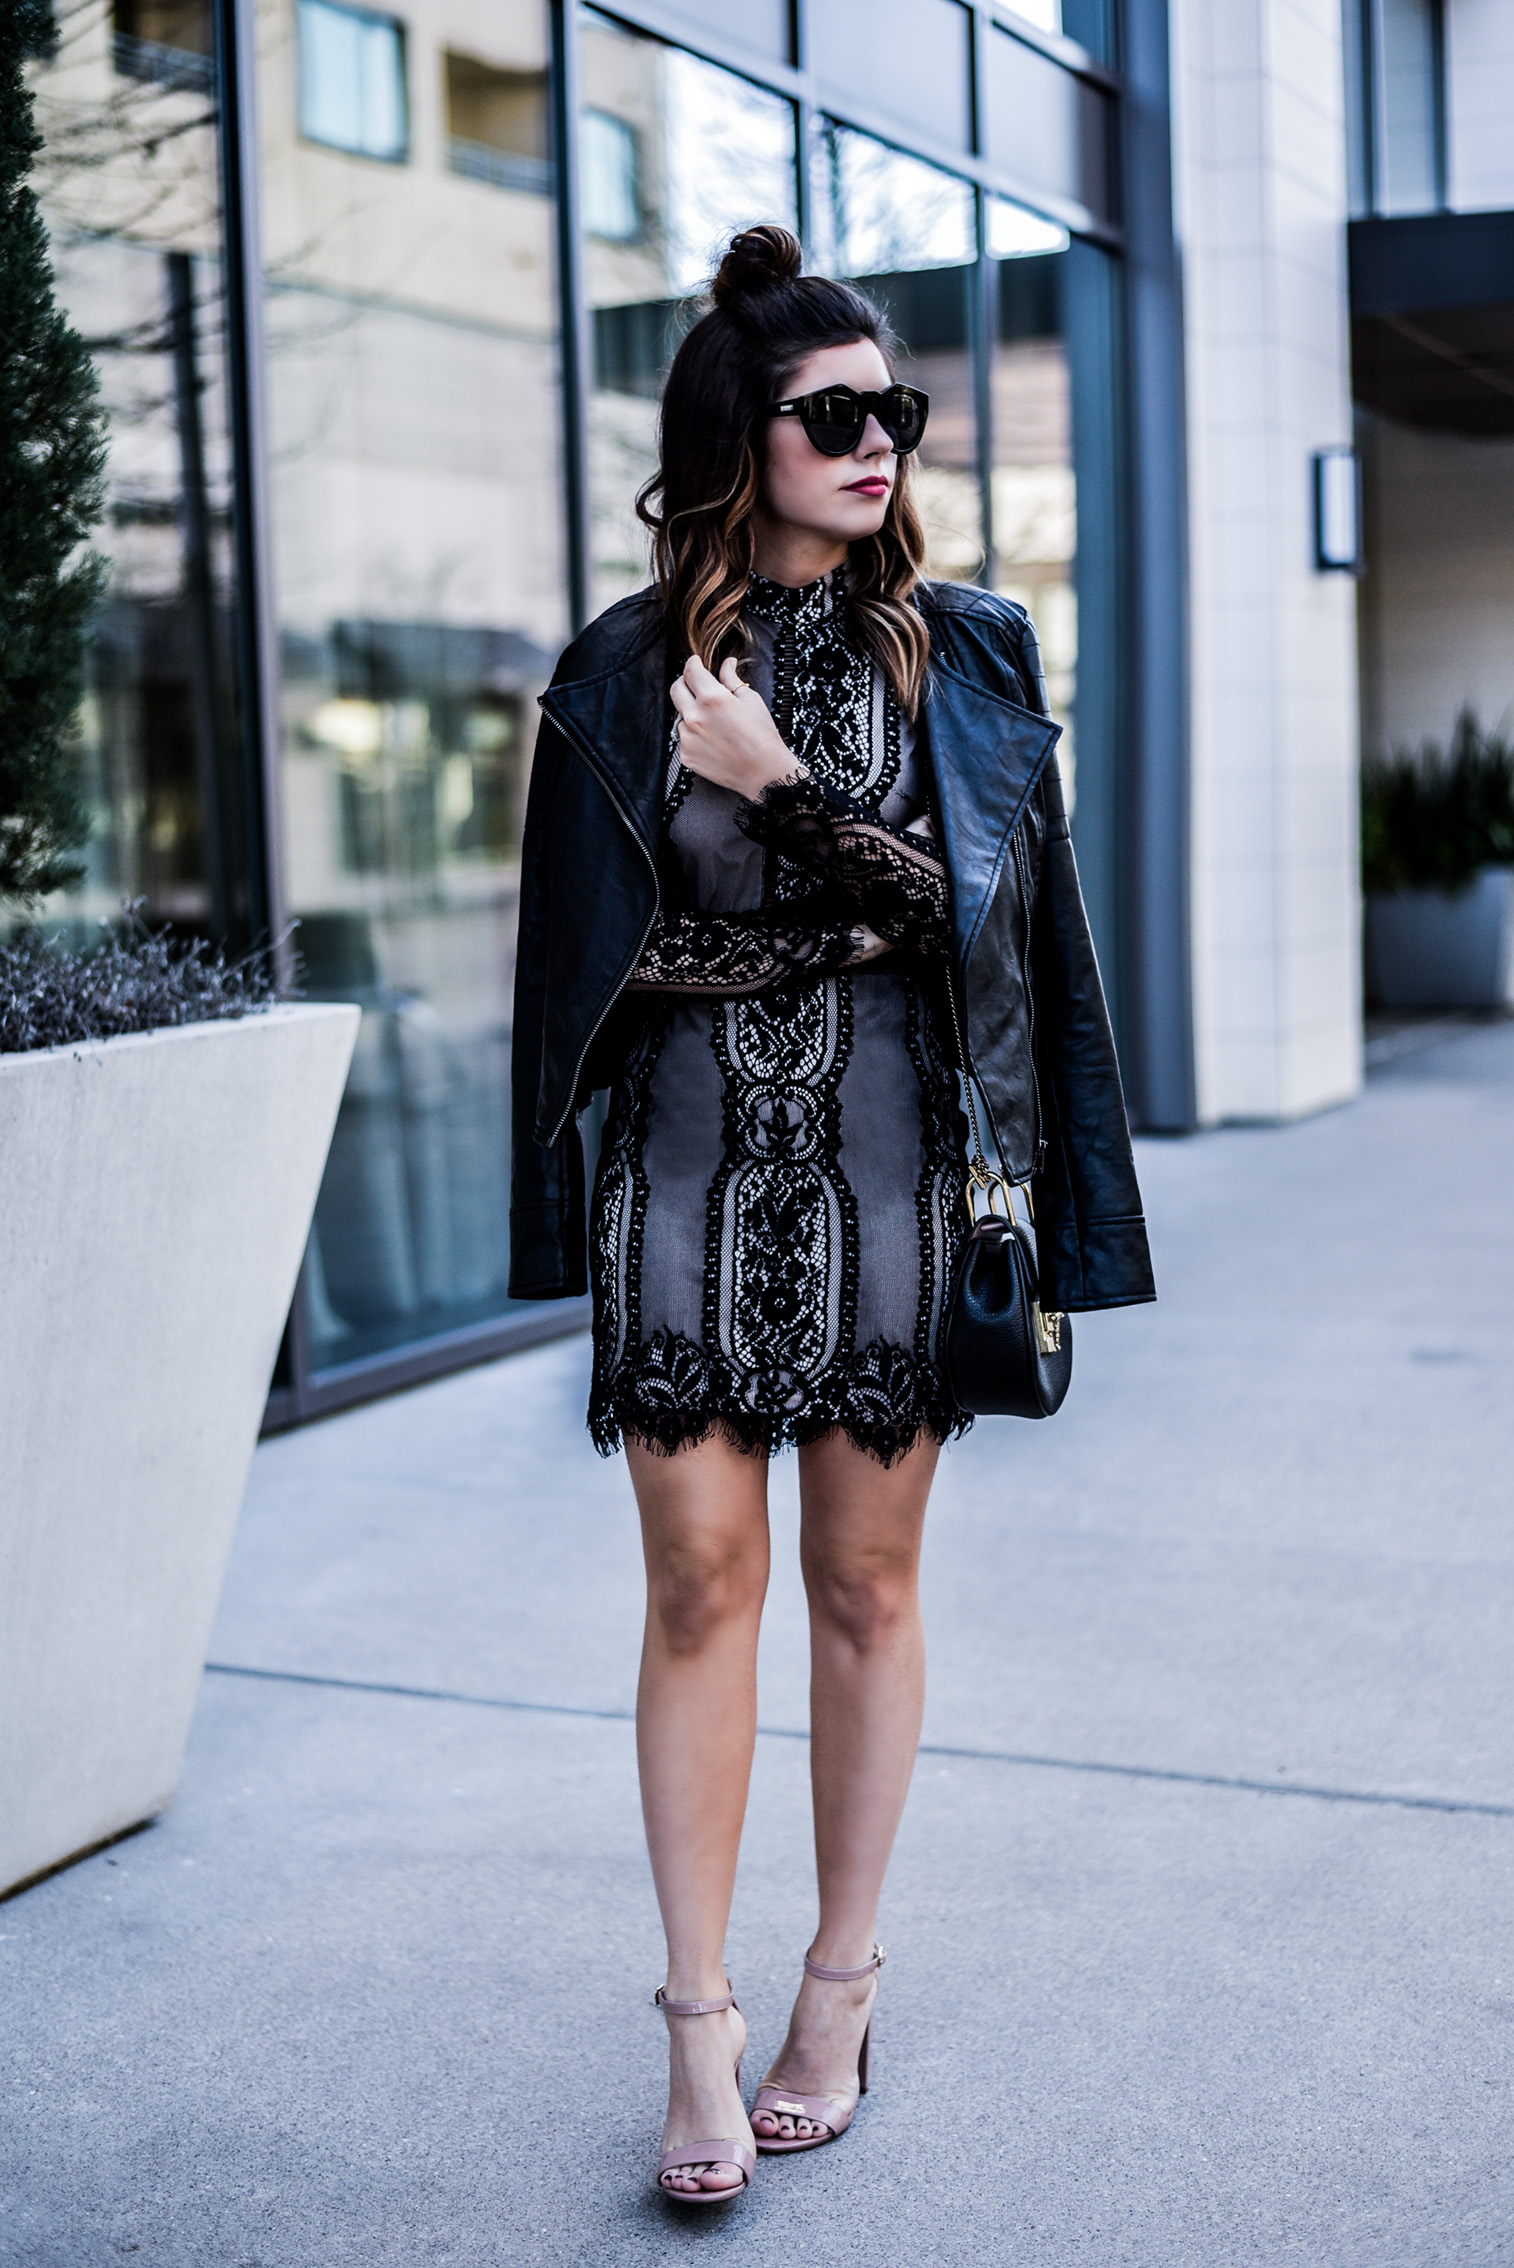 Houston fashion and lifestyle blogger Tiffany Jais wearing a black lace dress by Nordstrom and a black Chloe bag for Valentines Day, Click to read more | Valentines Day outfit ideas